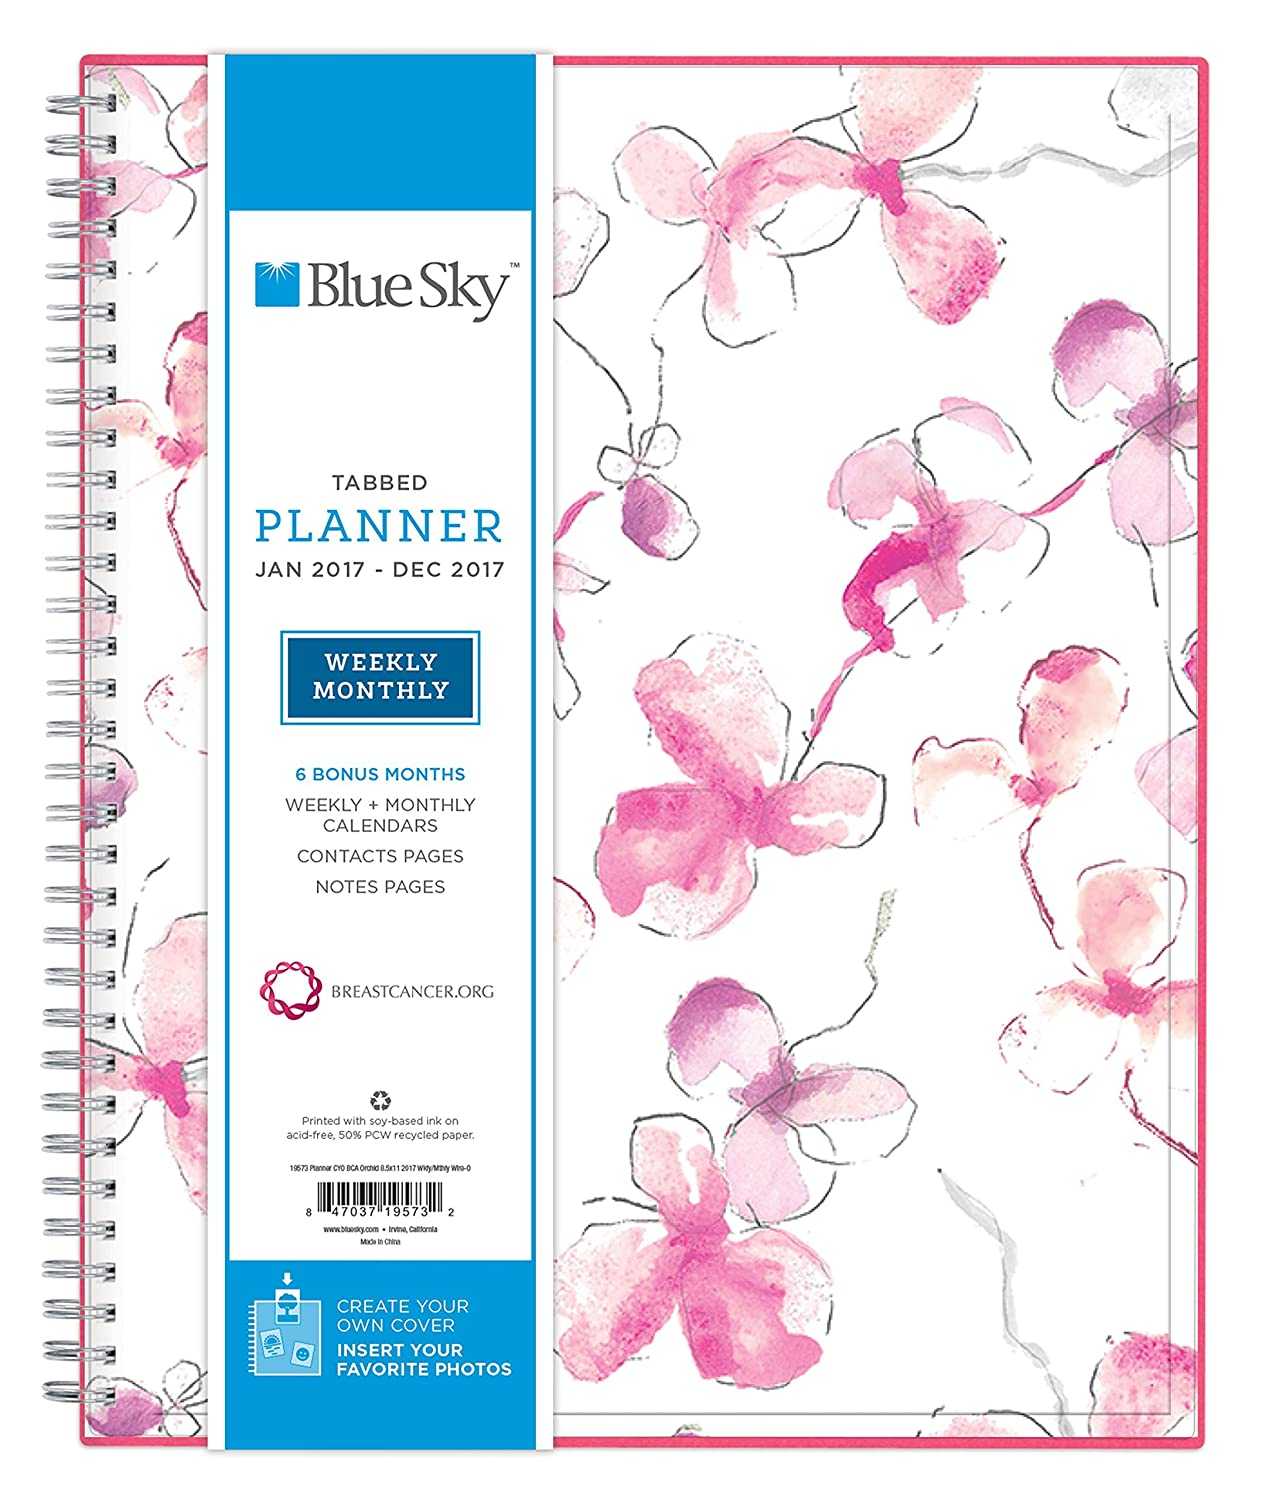 Amazon.com : Blue Sky 2017 Weekly & Monthly Planner, Wire-O ...